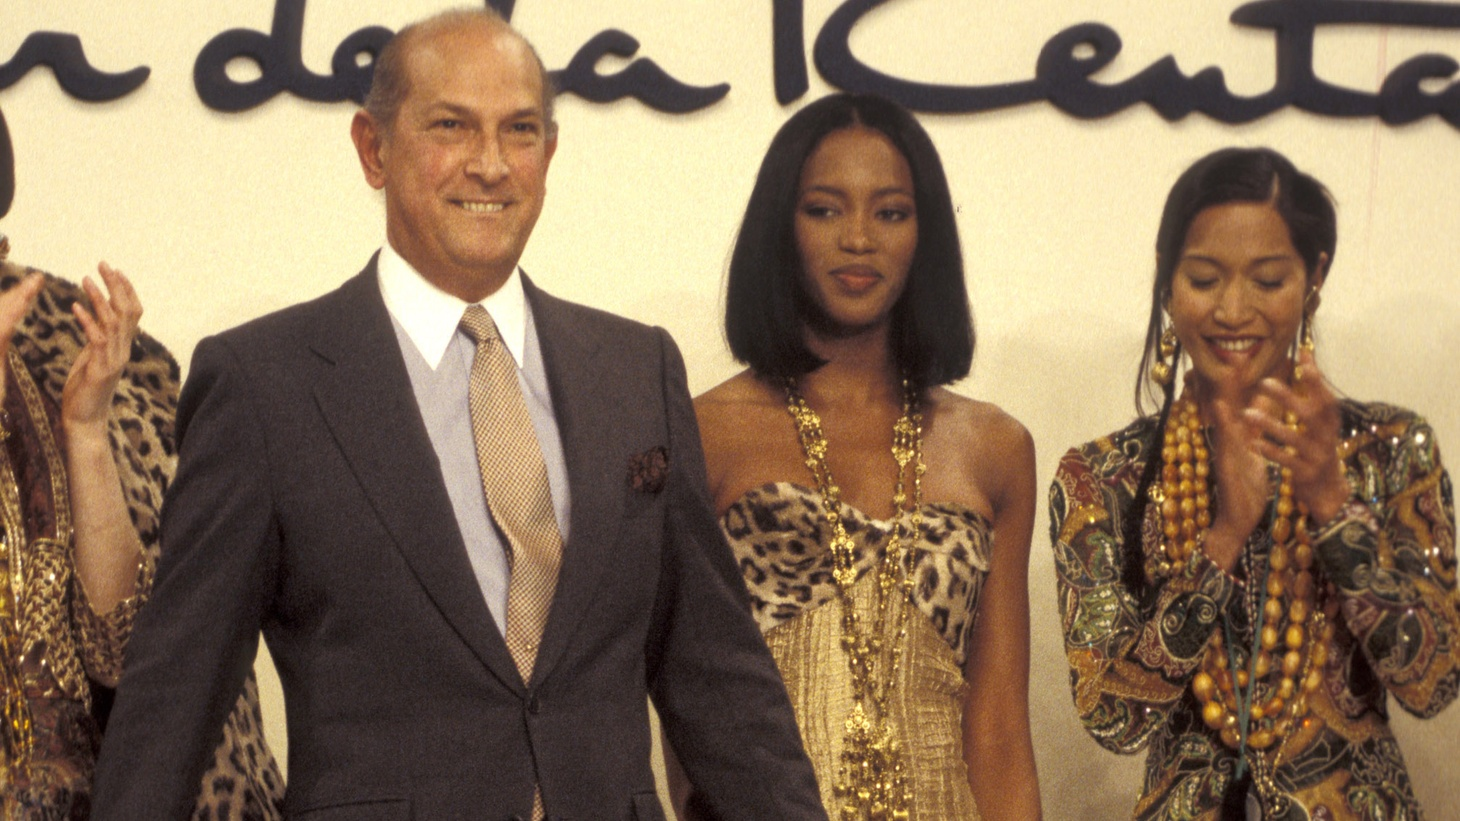 Beloved fashion designer Oscar de la Renta, known for his timelessly beautiful, yet wearable garments, died yesterday at the age of 82. And will LA soon have a pro football team again...and is that a good thing?